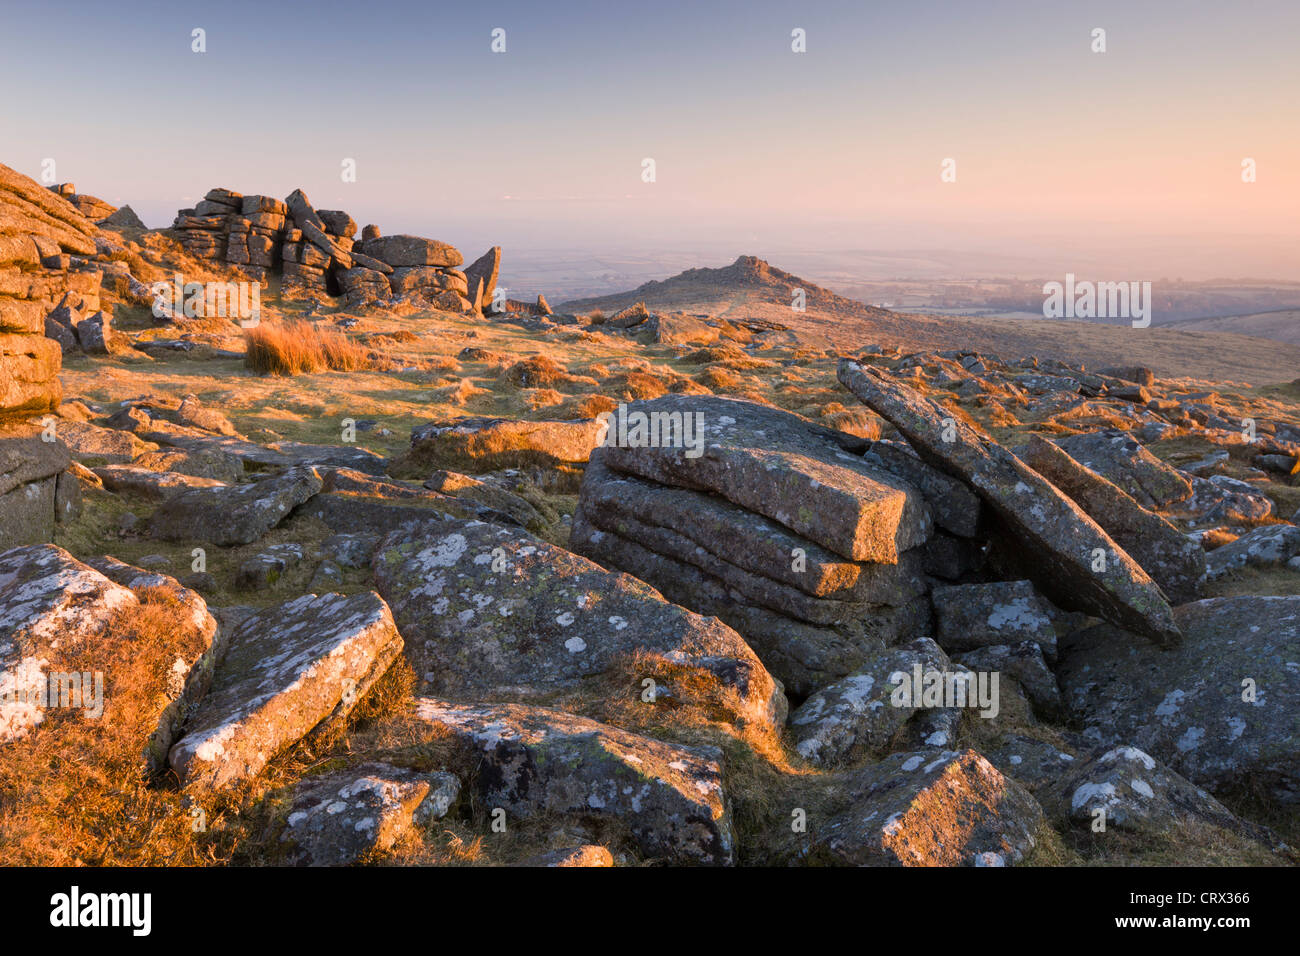 Broken granite rocks on Belstone Common at dawn, Dartmoor National Park, Devon, England. Winter (March) 2010. - Stock Image